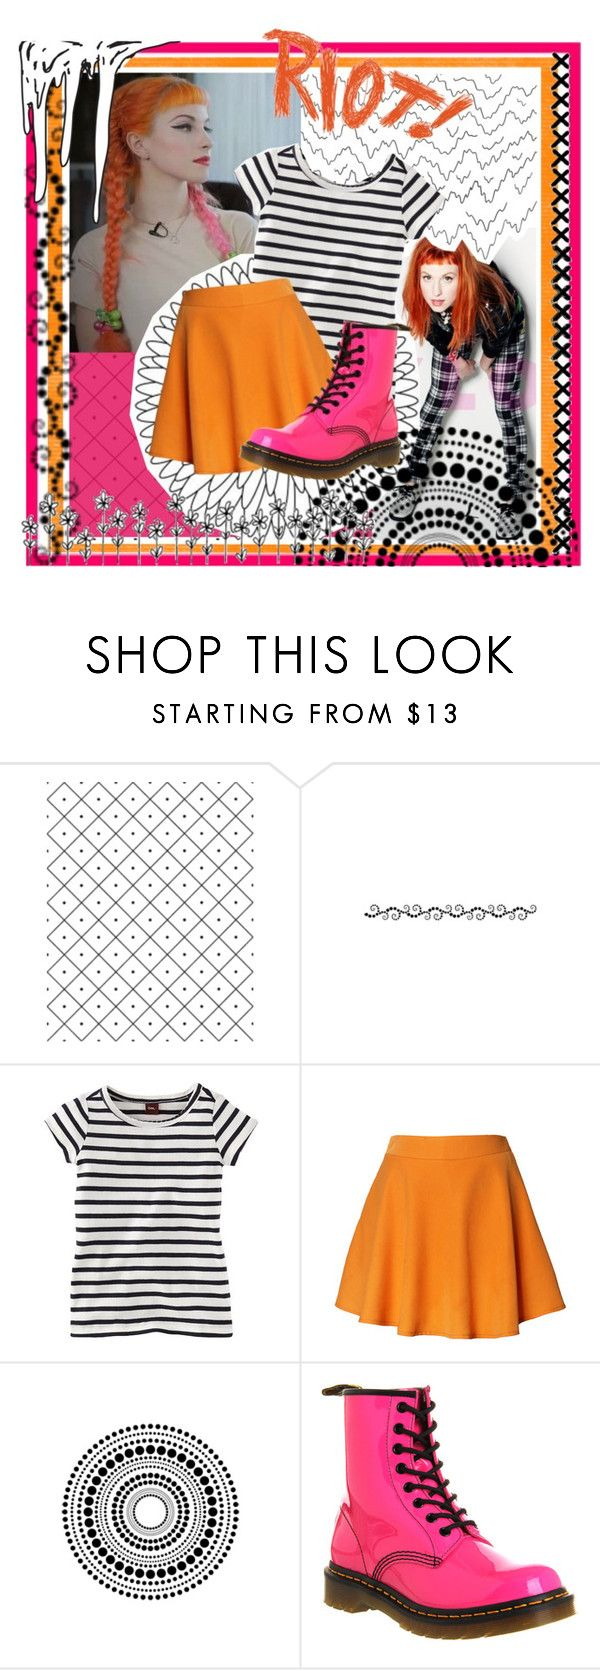 """""""Fashion Inspiration: Hayley Williams (Paramore)"""" by liesle ❤ liked on Polyvore featuring Camp, Chicwish and Dr. Martens"""